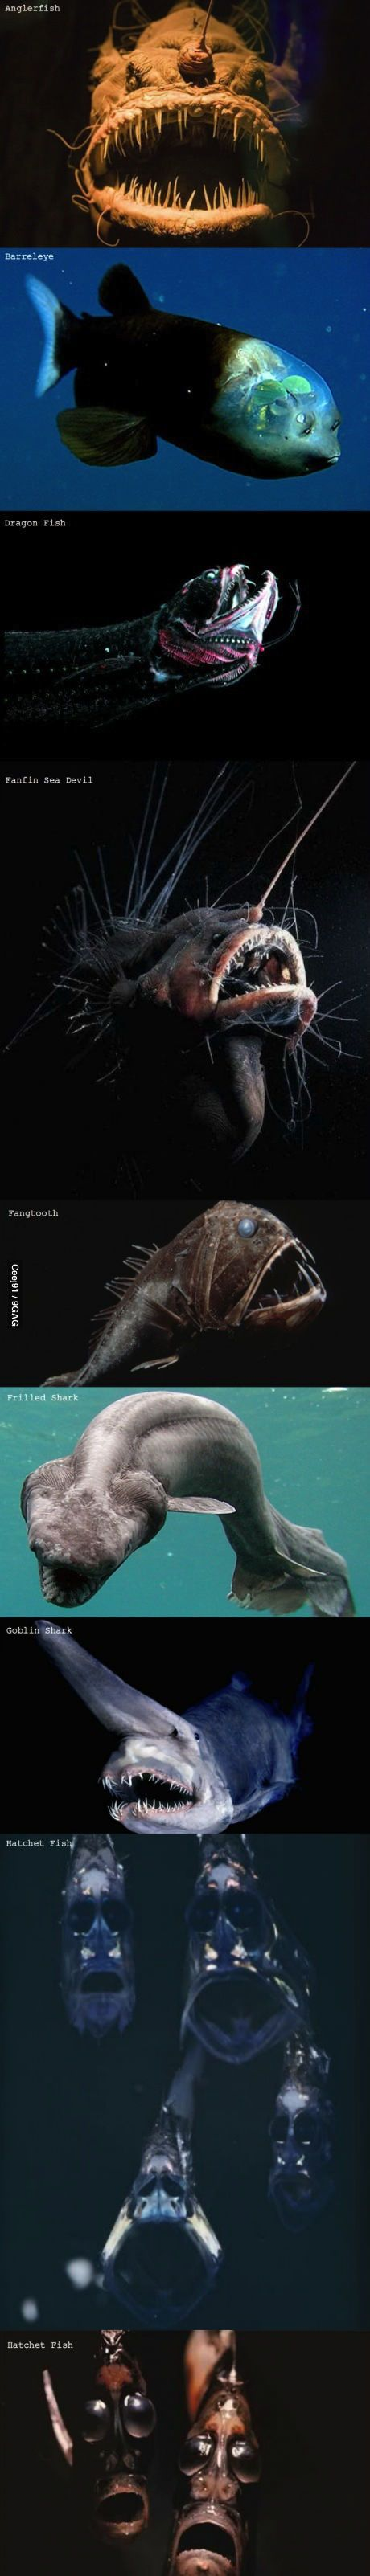 there are other fish in the sea... - (deep sea)(sea life) - #fish #deepsea #sealife